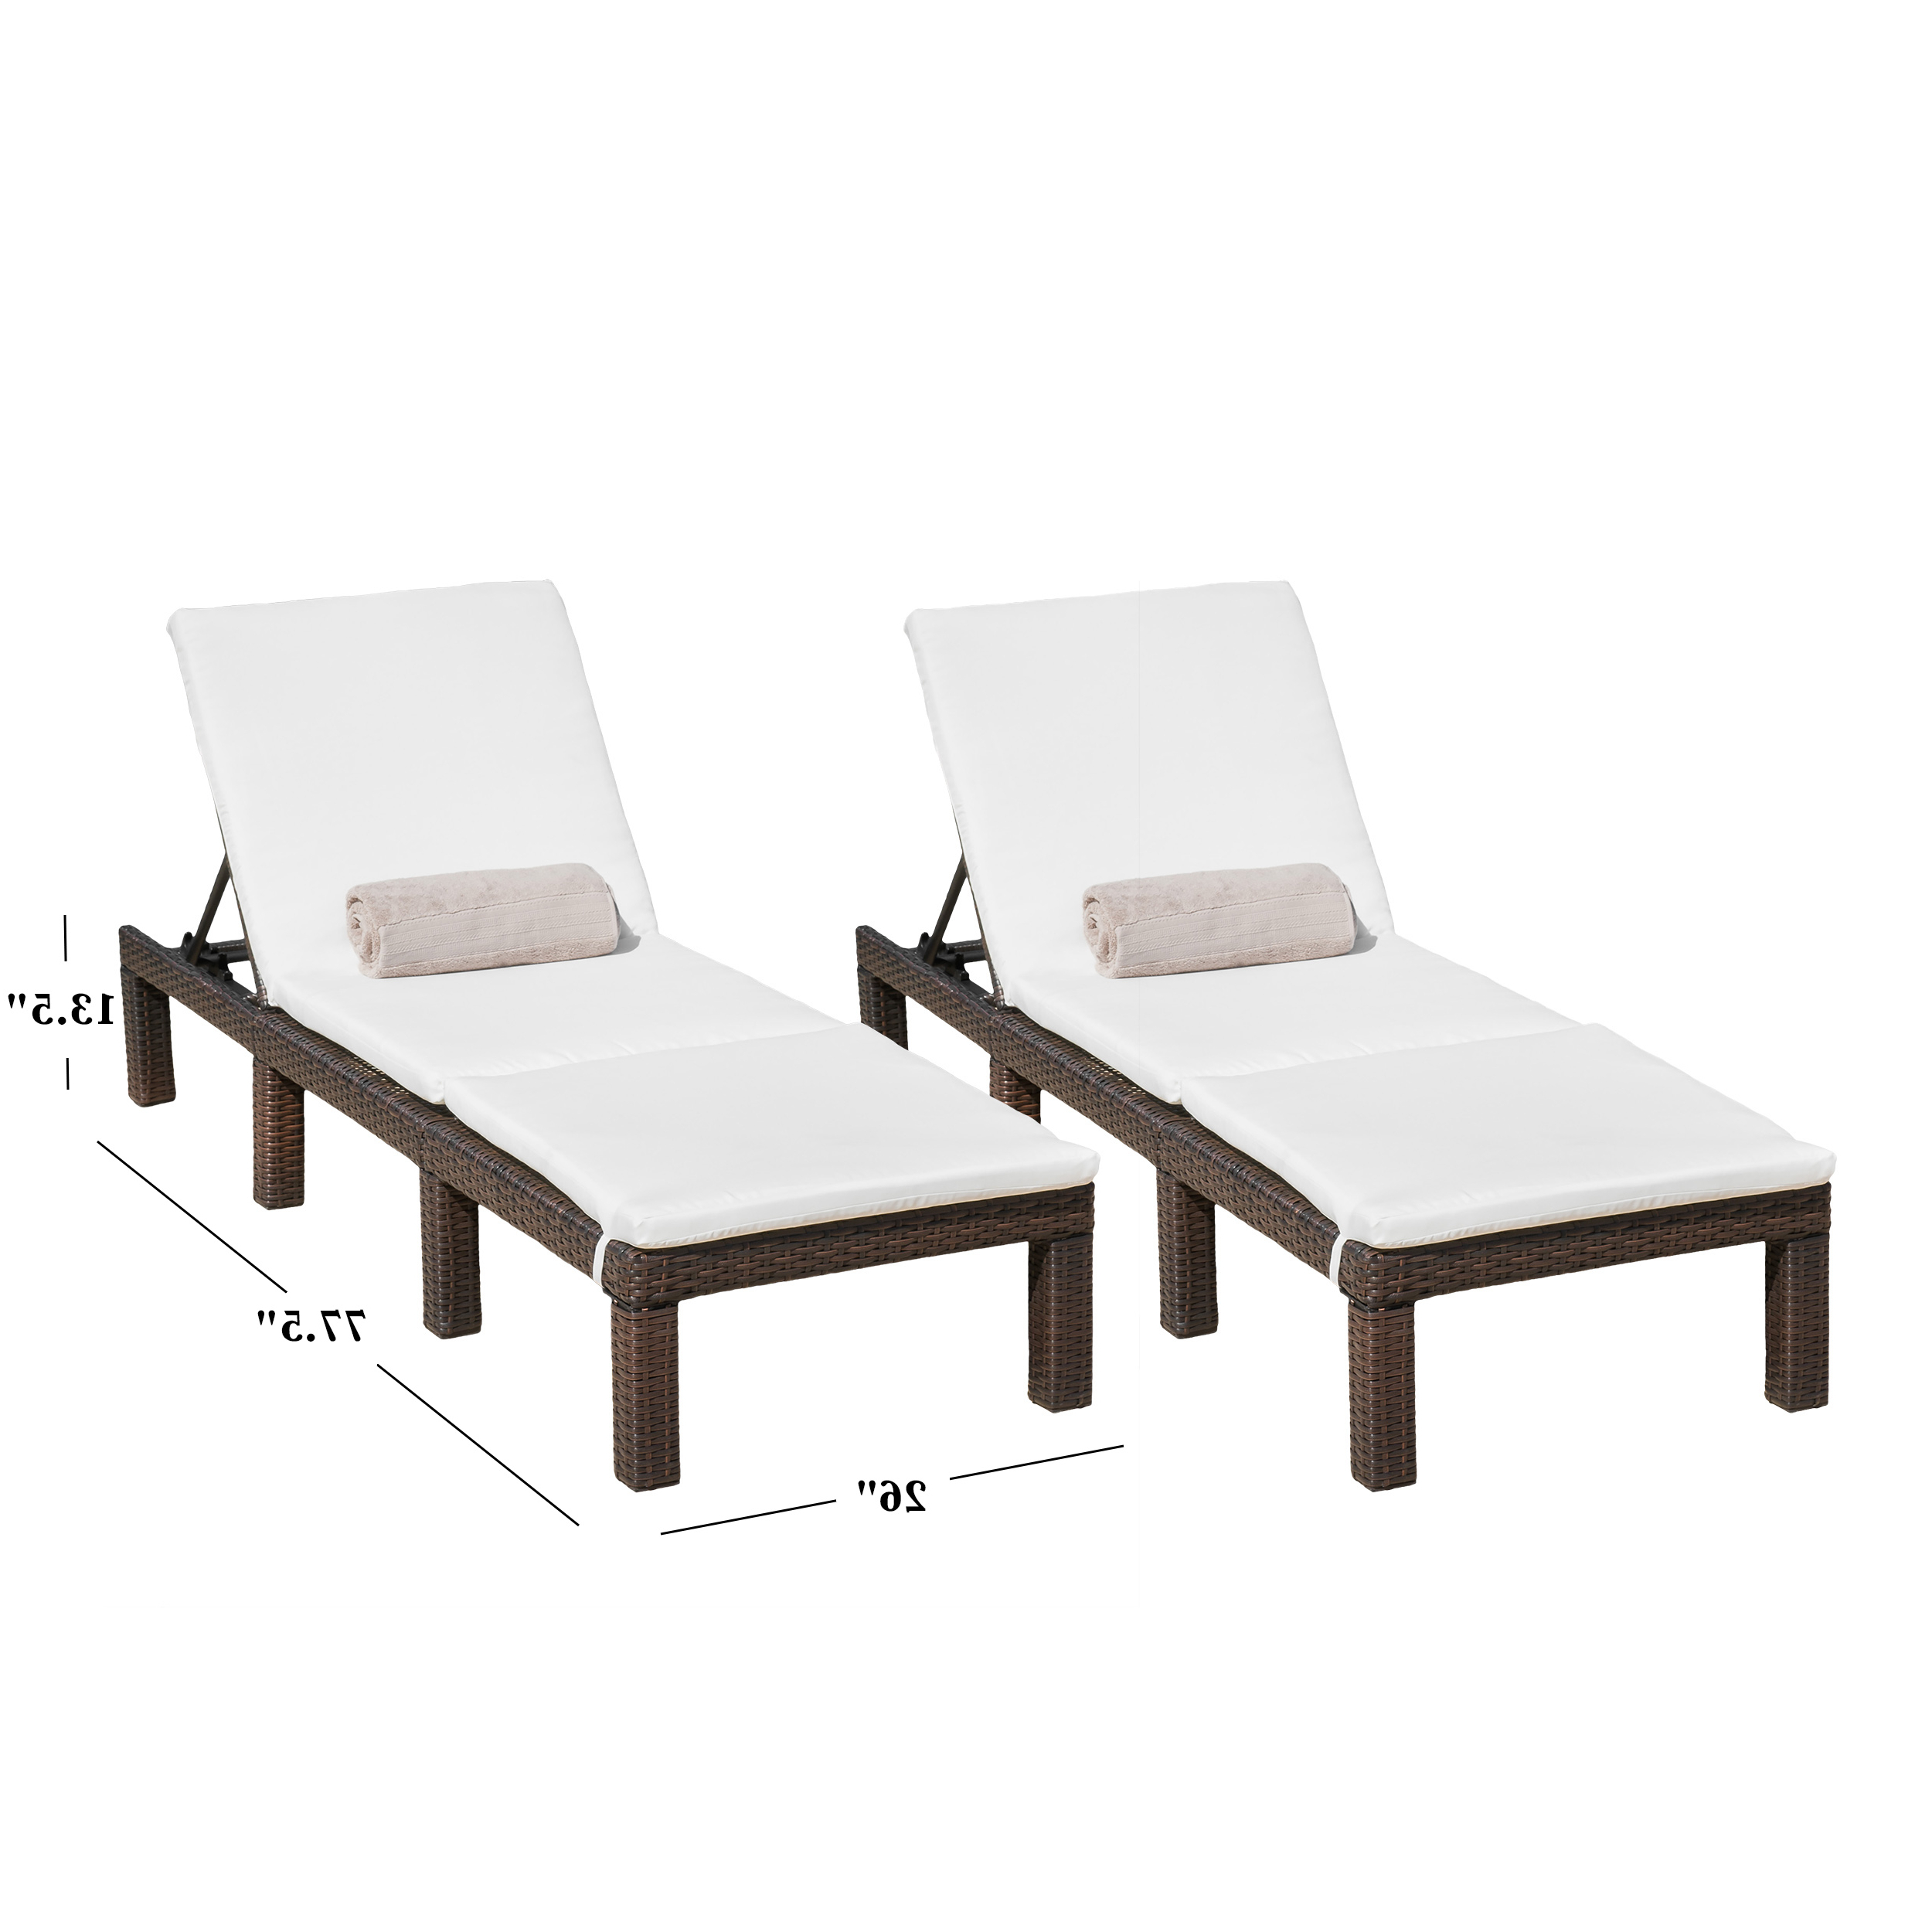 Aspen Outdoor Wicker Adjustable Chaise Lounges With Cushions (set Of 2) With Regard To Well Known White Wicker Adjustable Chaise Loungers With Cushions (View 17 of 25)